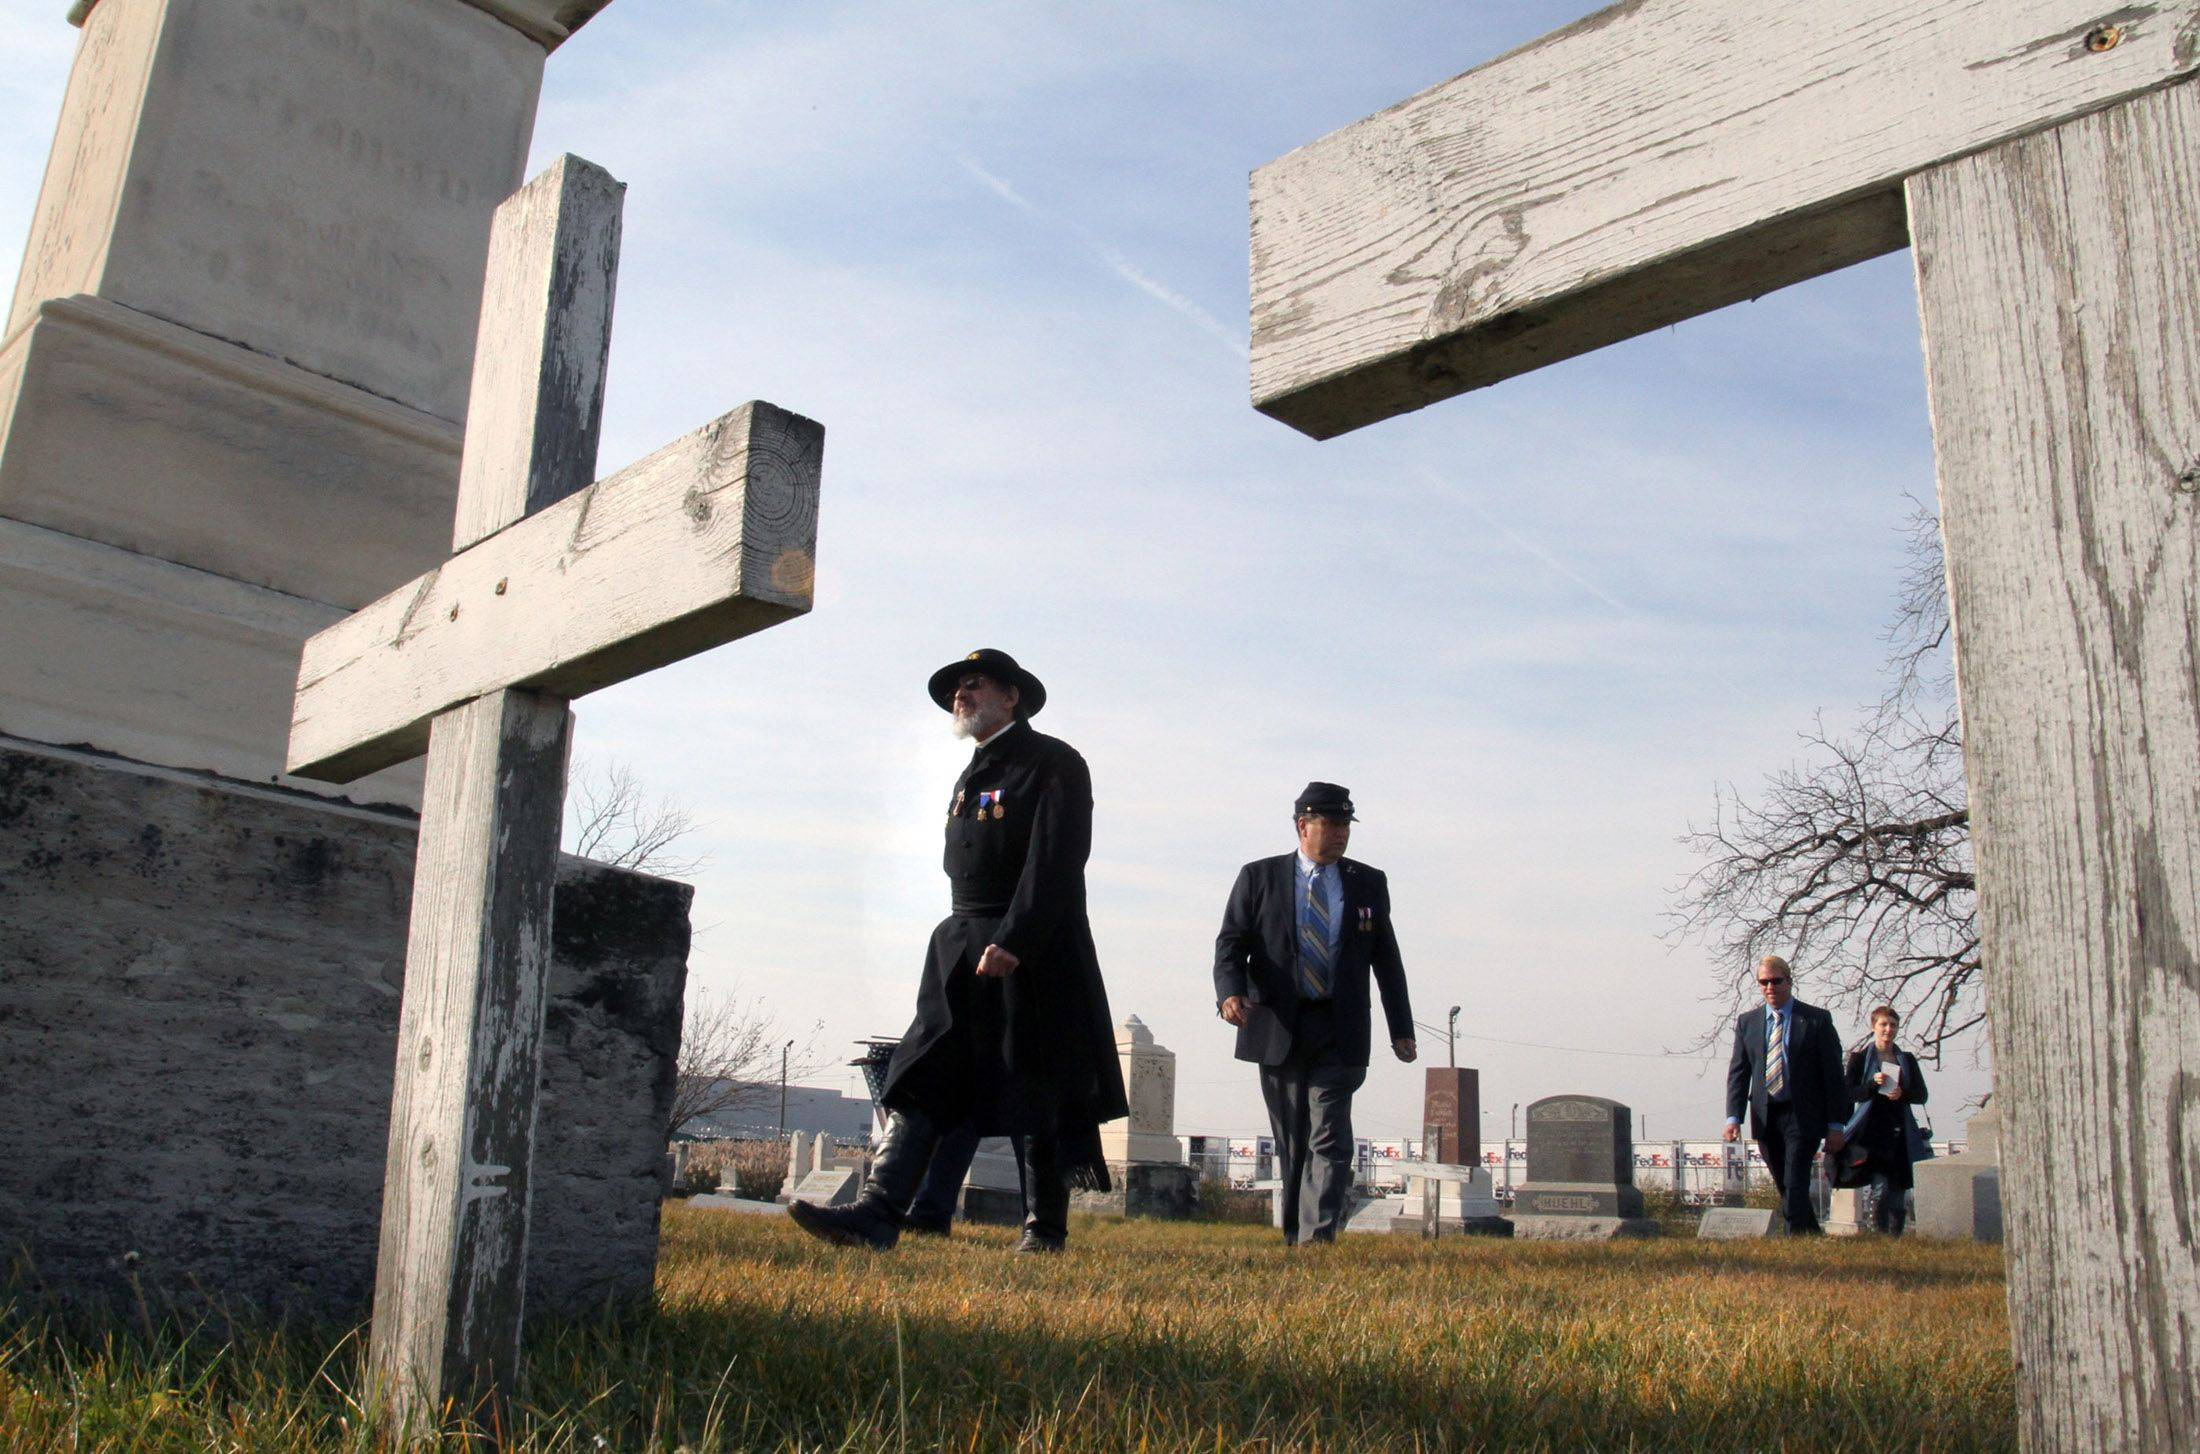 Jerry Kowalski, left, of Elmhurst, National Chaplain for the Sons of Union Veterans walks through Johannes Cemetery just after the memorial ceremony on Veterans Day at the cemetery just south of O'Hare International Airport in Chicago on Thursday, November 11.